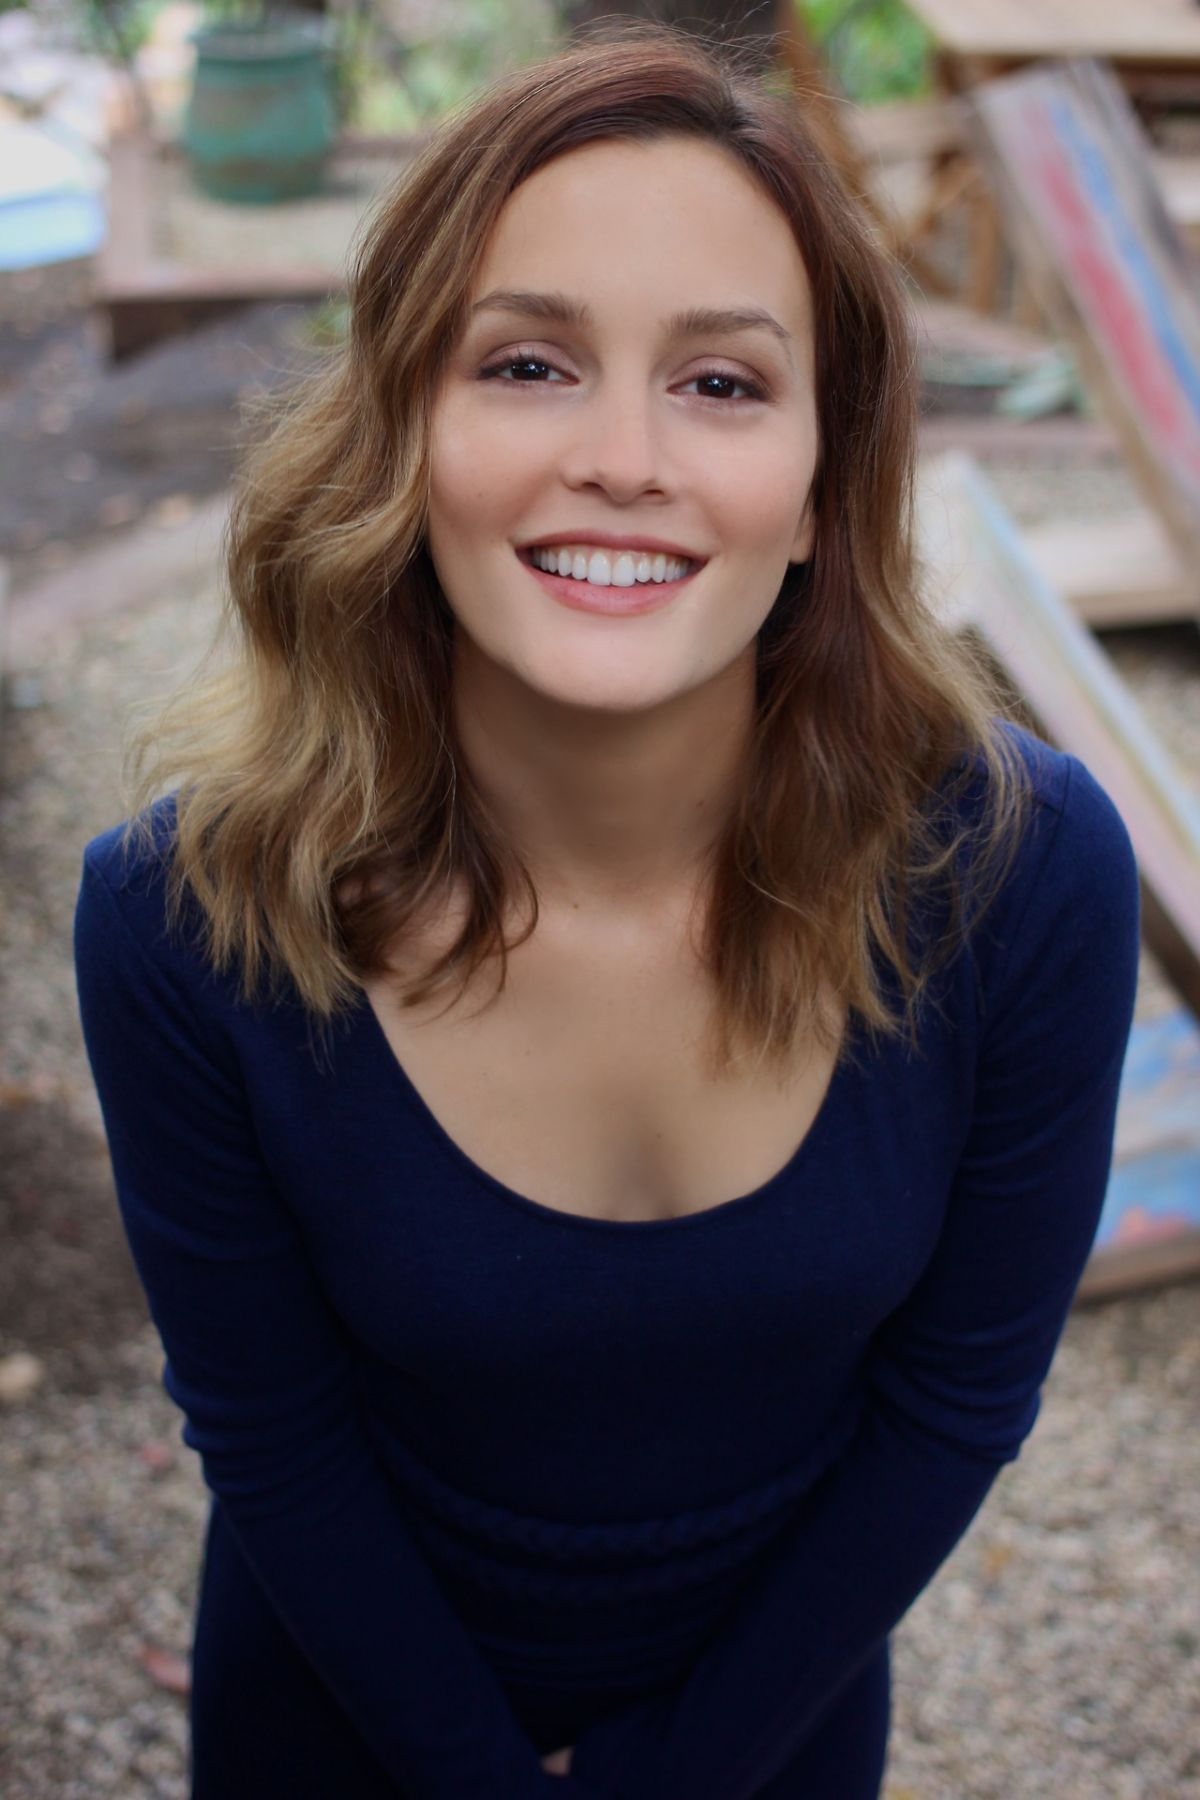 Leighton Meester Archives - Page 5 of 7 - HawtCelebs ...